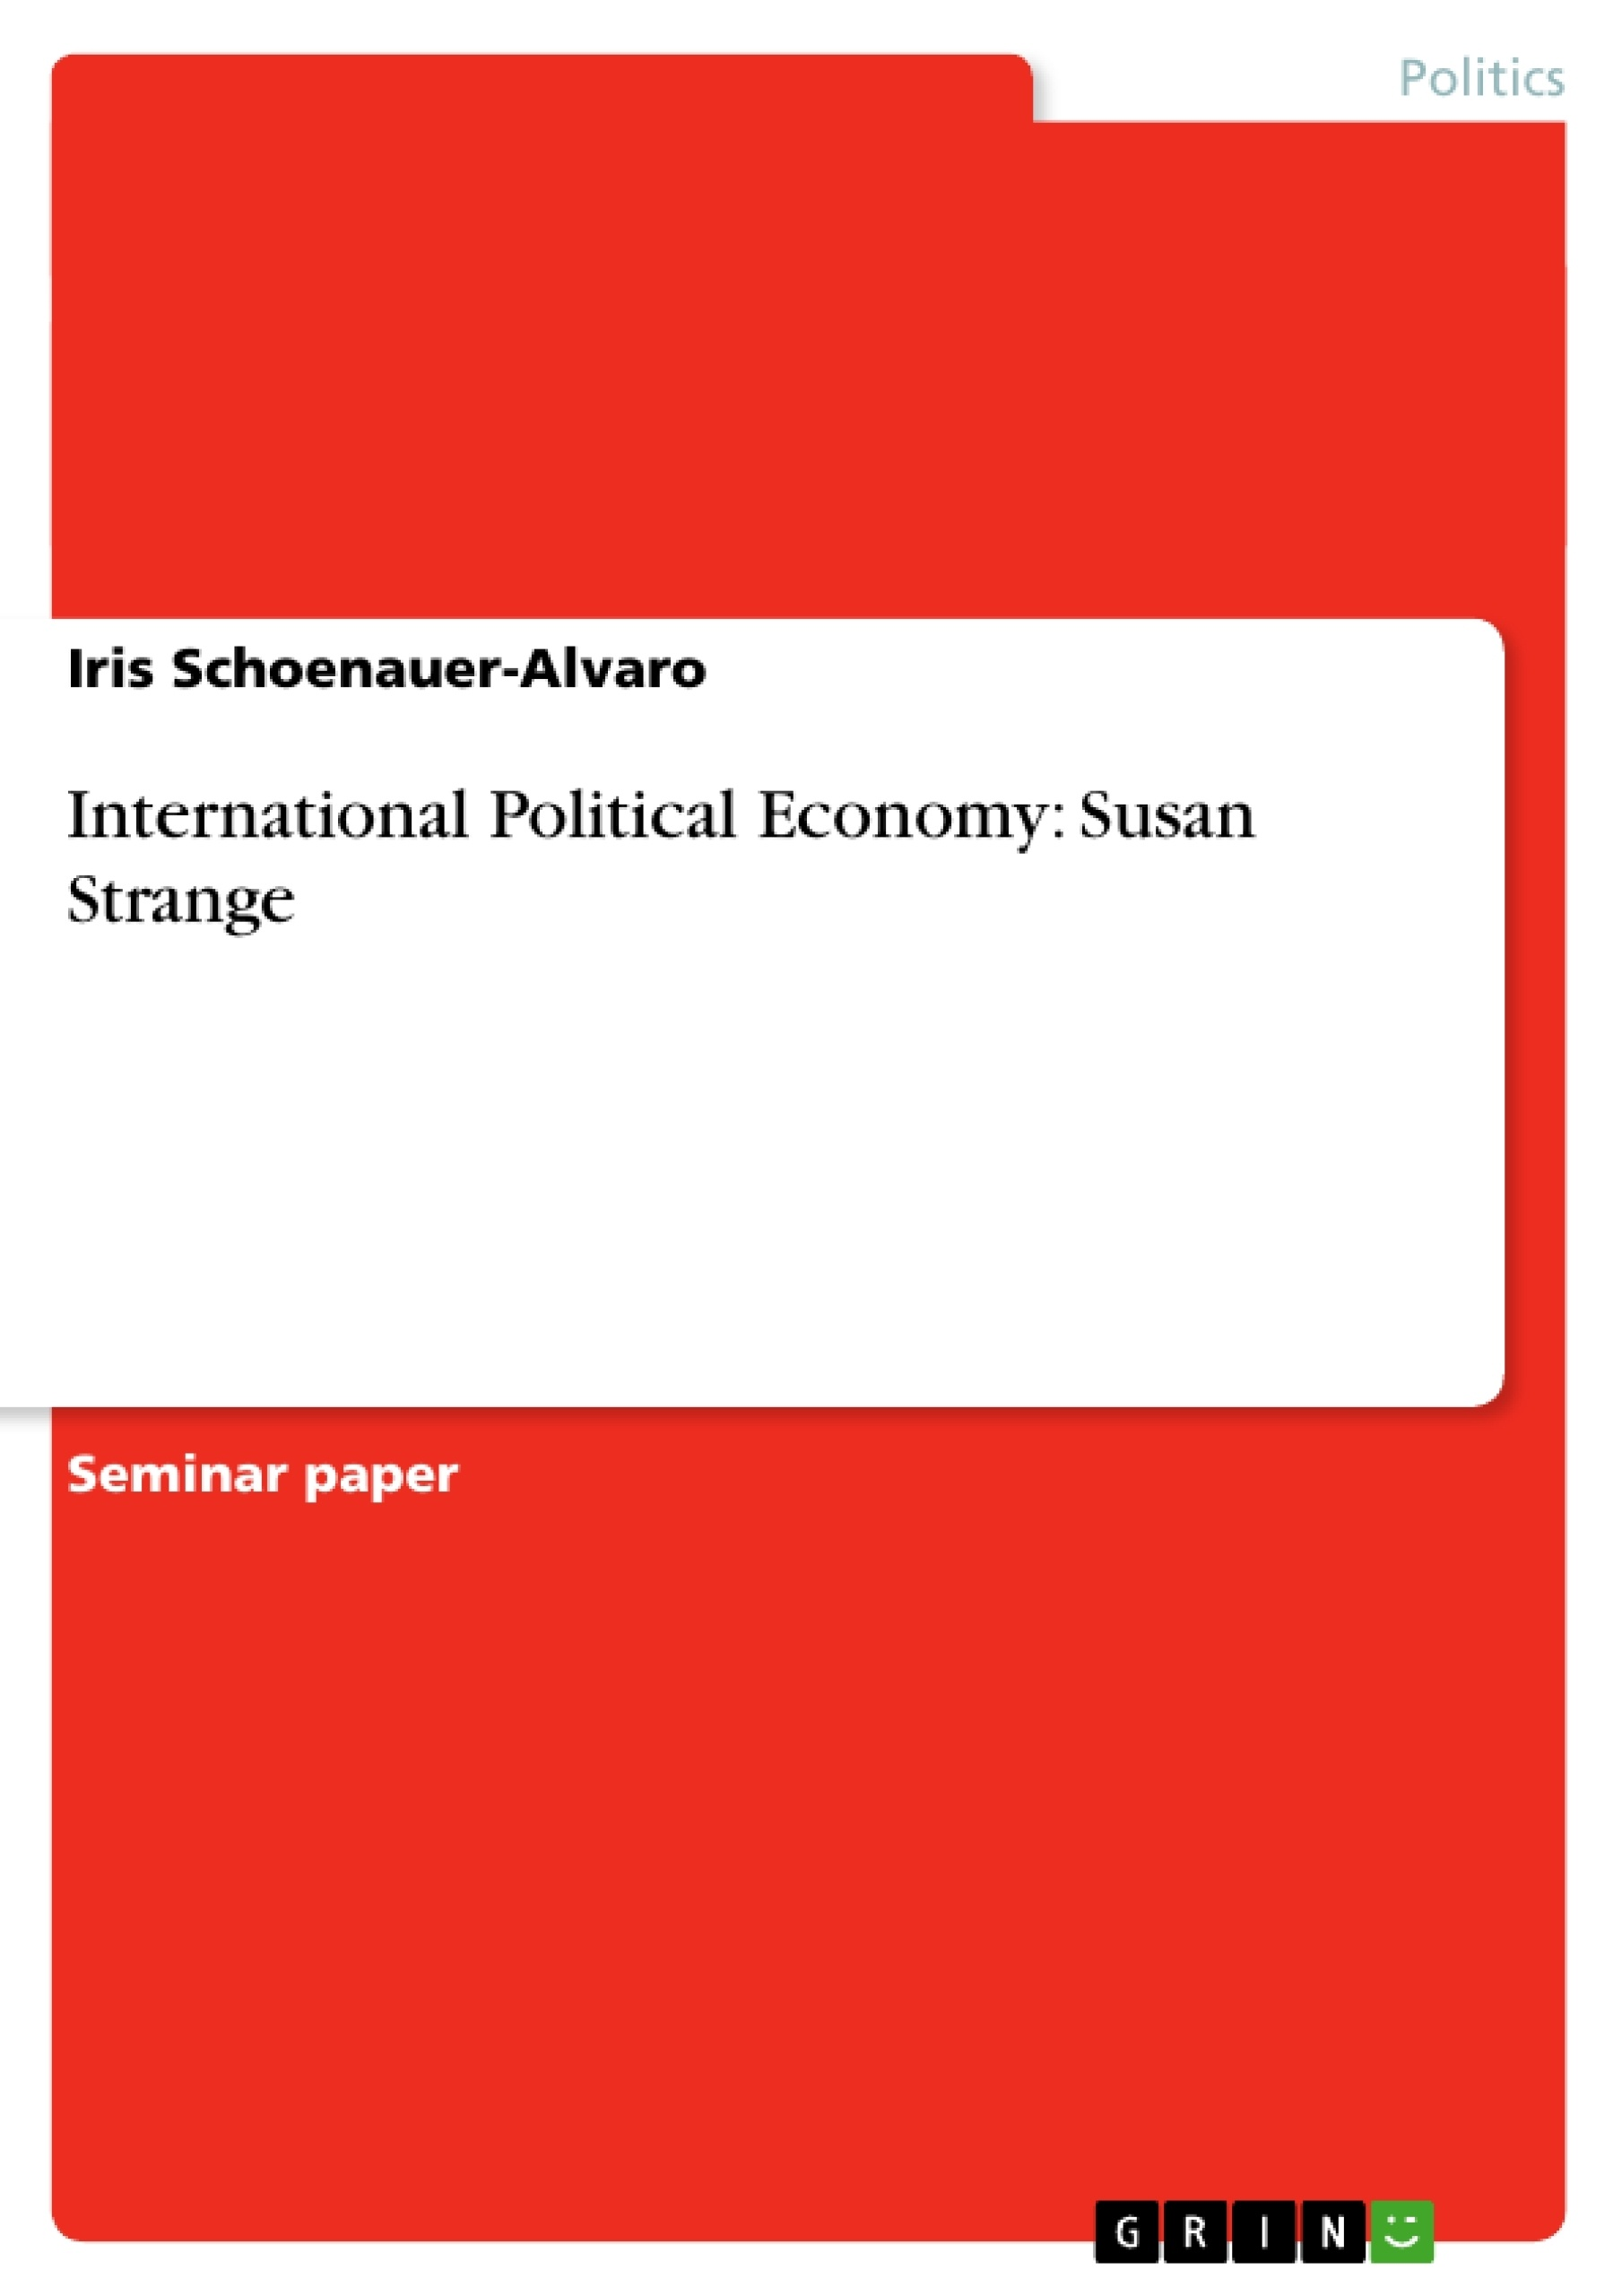 global political economy thesis - the collapse of the soviet union was a turning point in the global political development during the twentieth century, which led to radical transformations in all political, economic and military interactions.